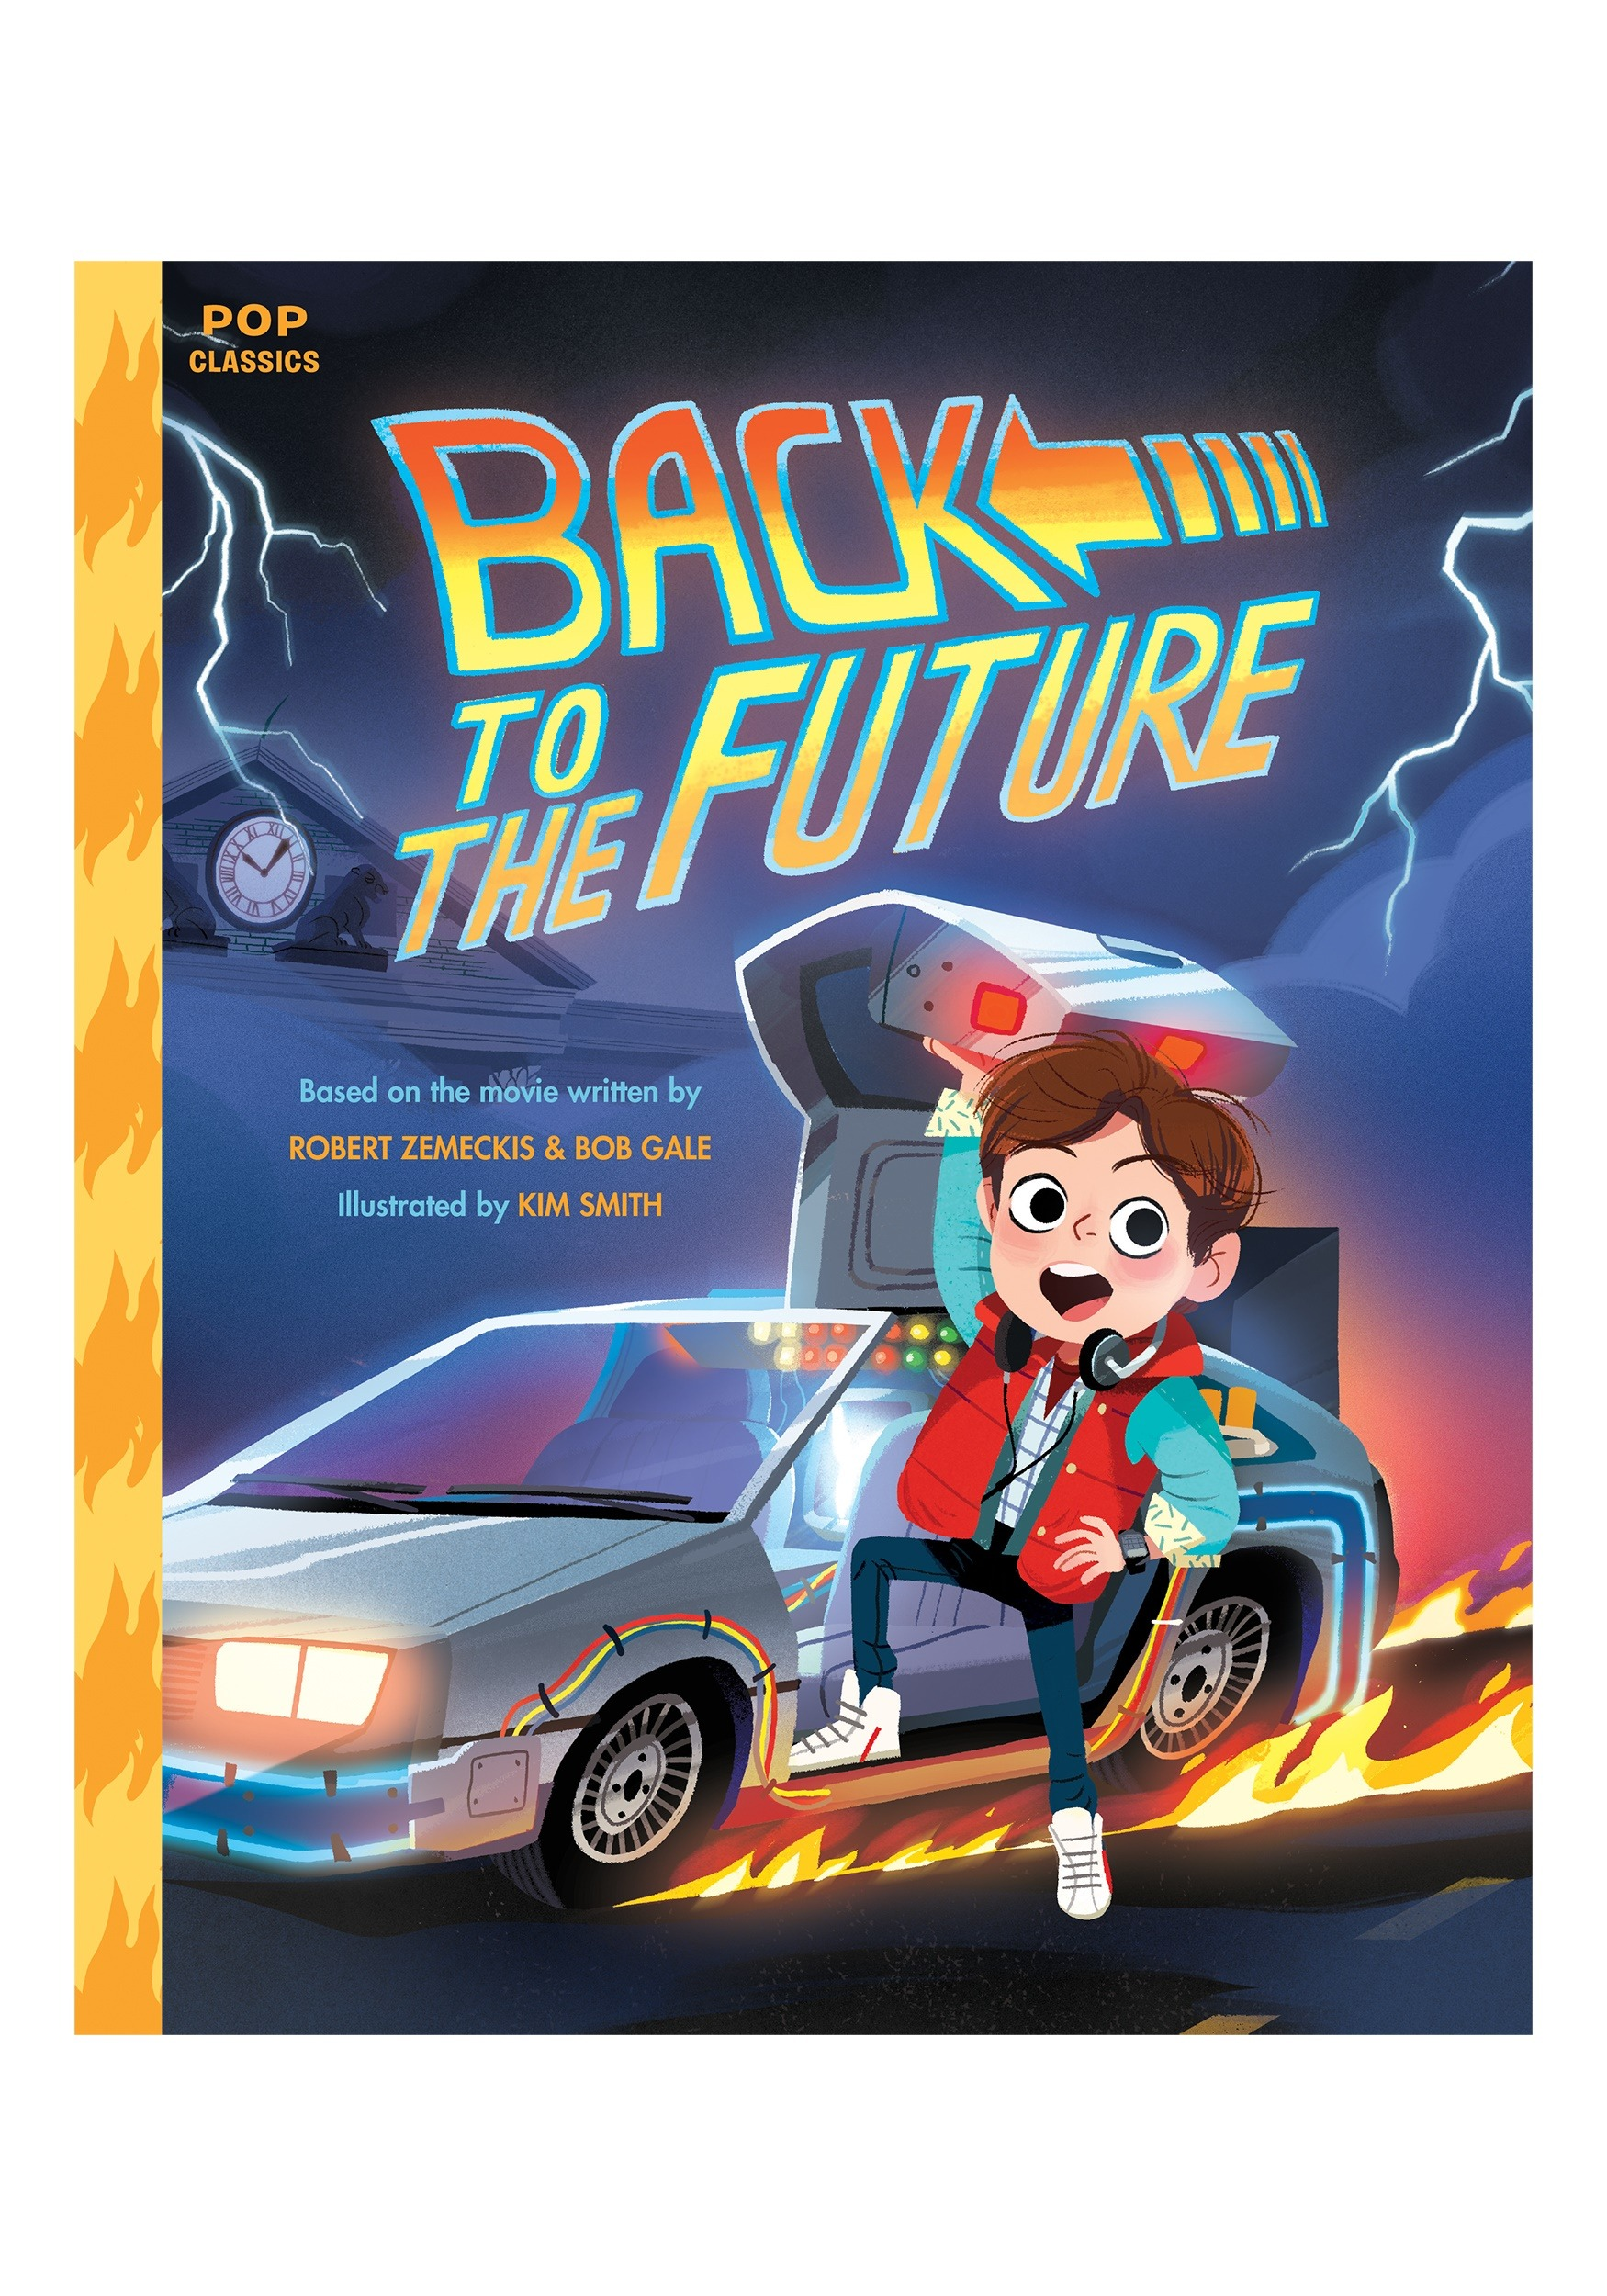 Back to the Future: Pop Classic Picture Book